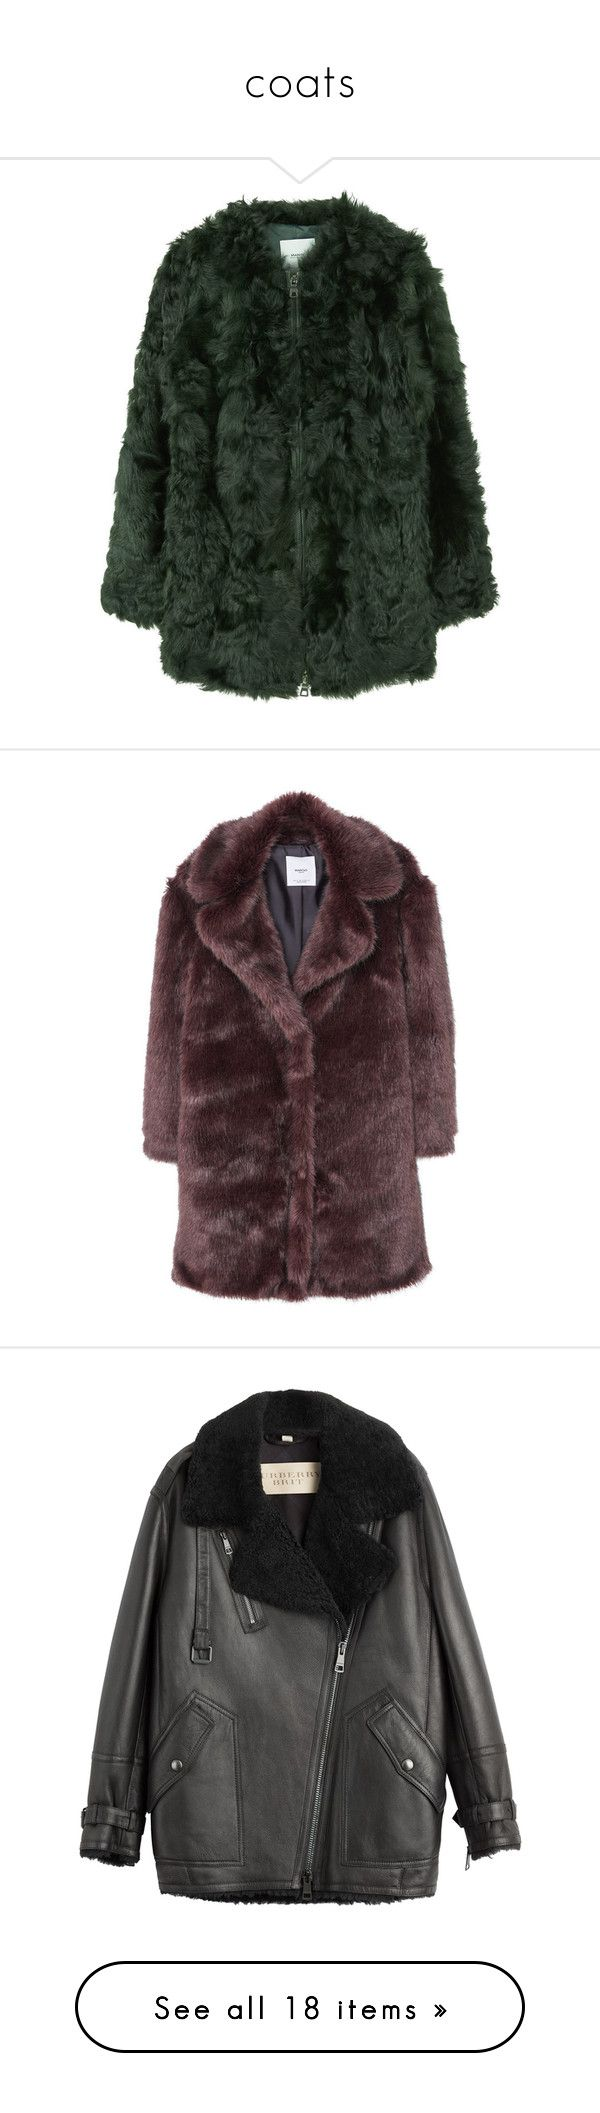 """""""coats"""" by millicent4 ❤ liked on Polyvore featuring outerwear, coats, jackets, fur, coats & jackets, fur lined coat, mango coat, real leather coats, fur-lined coats and zip coat"""